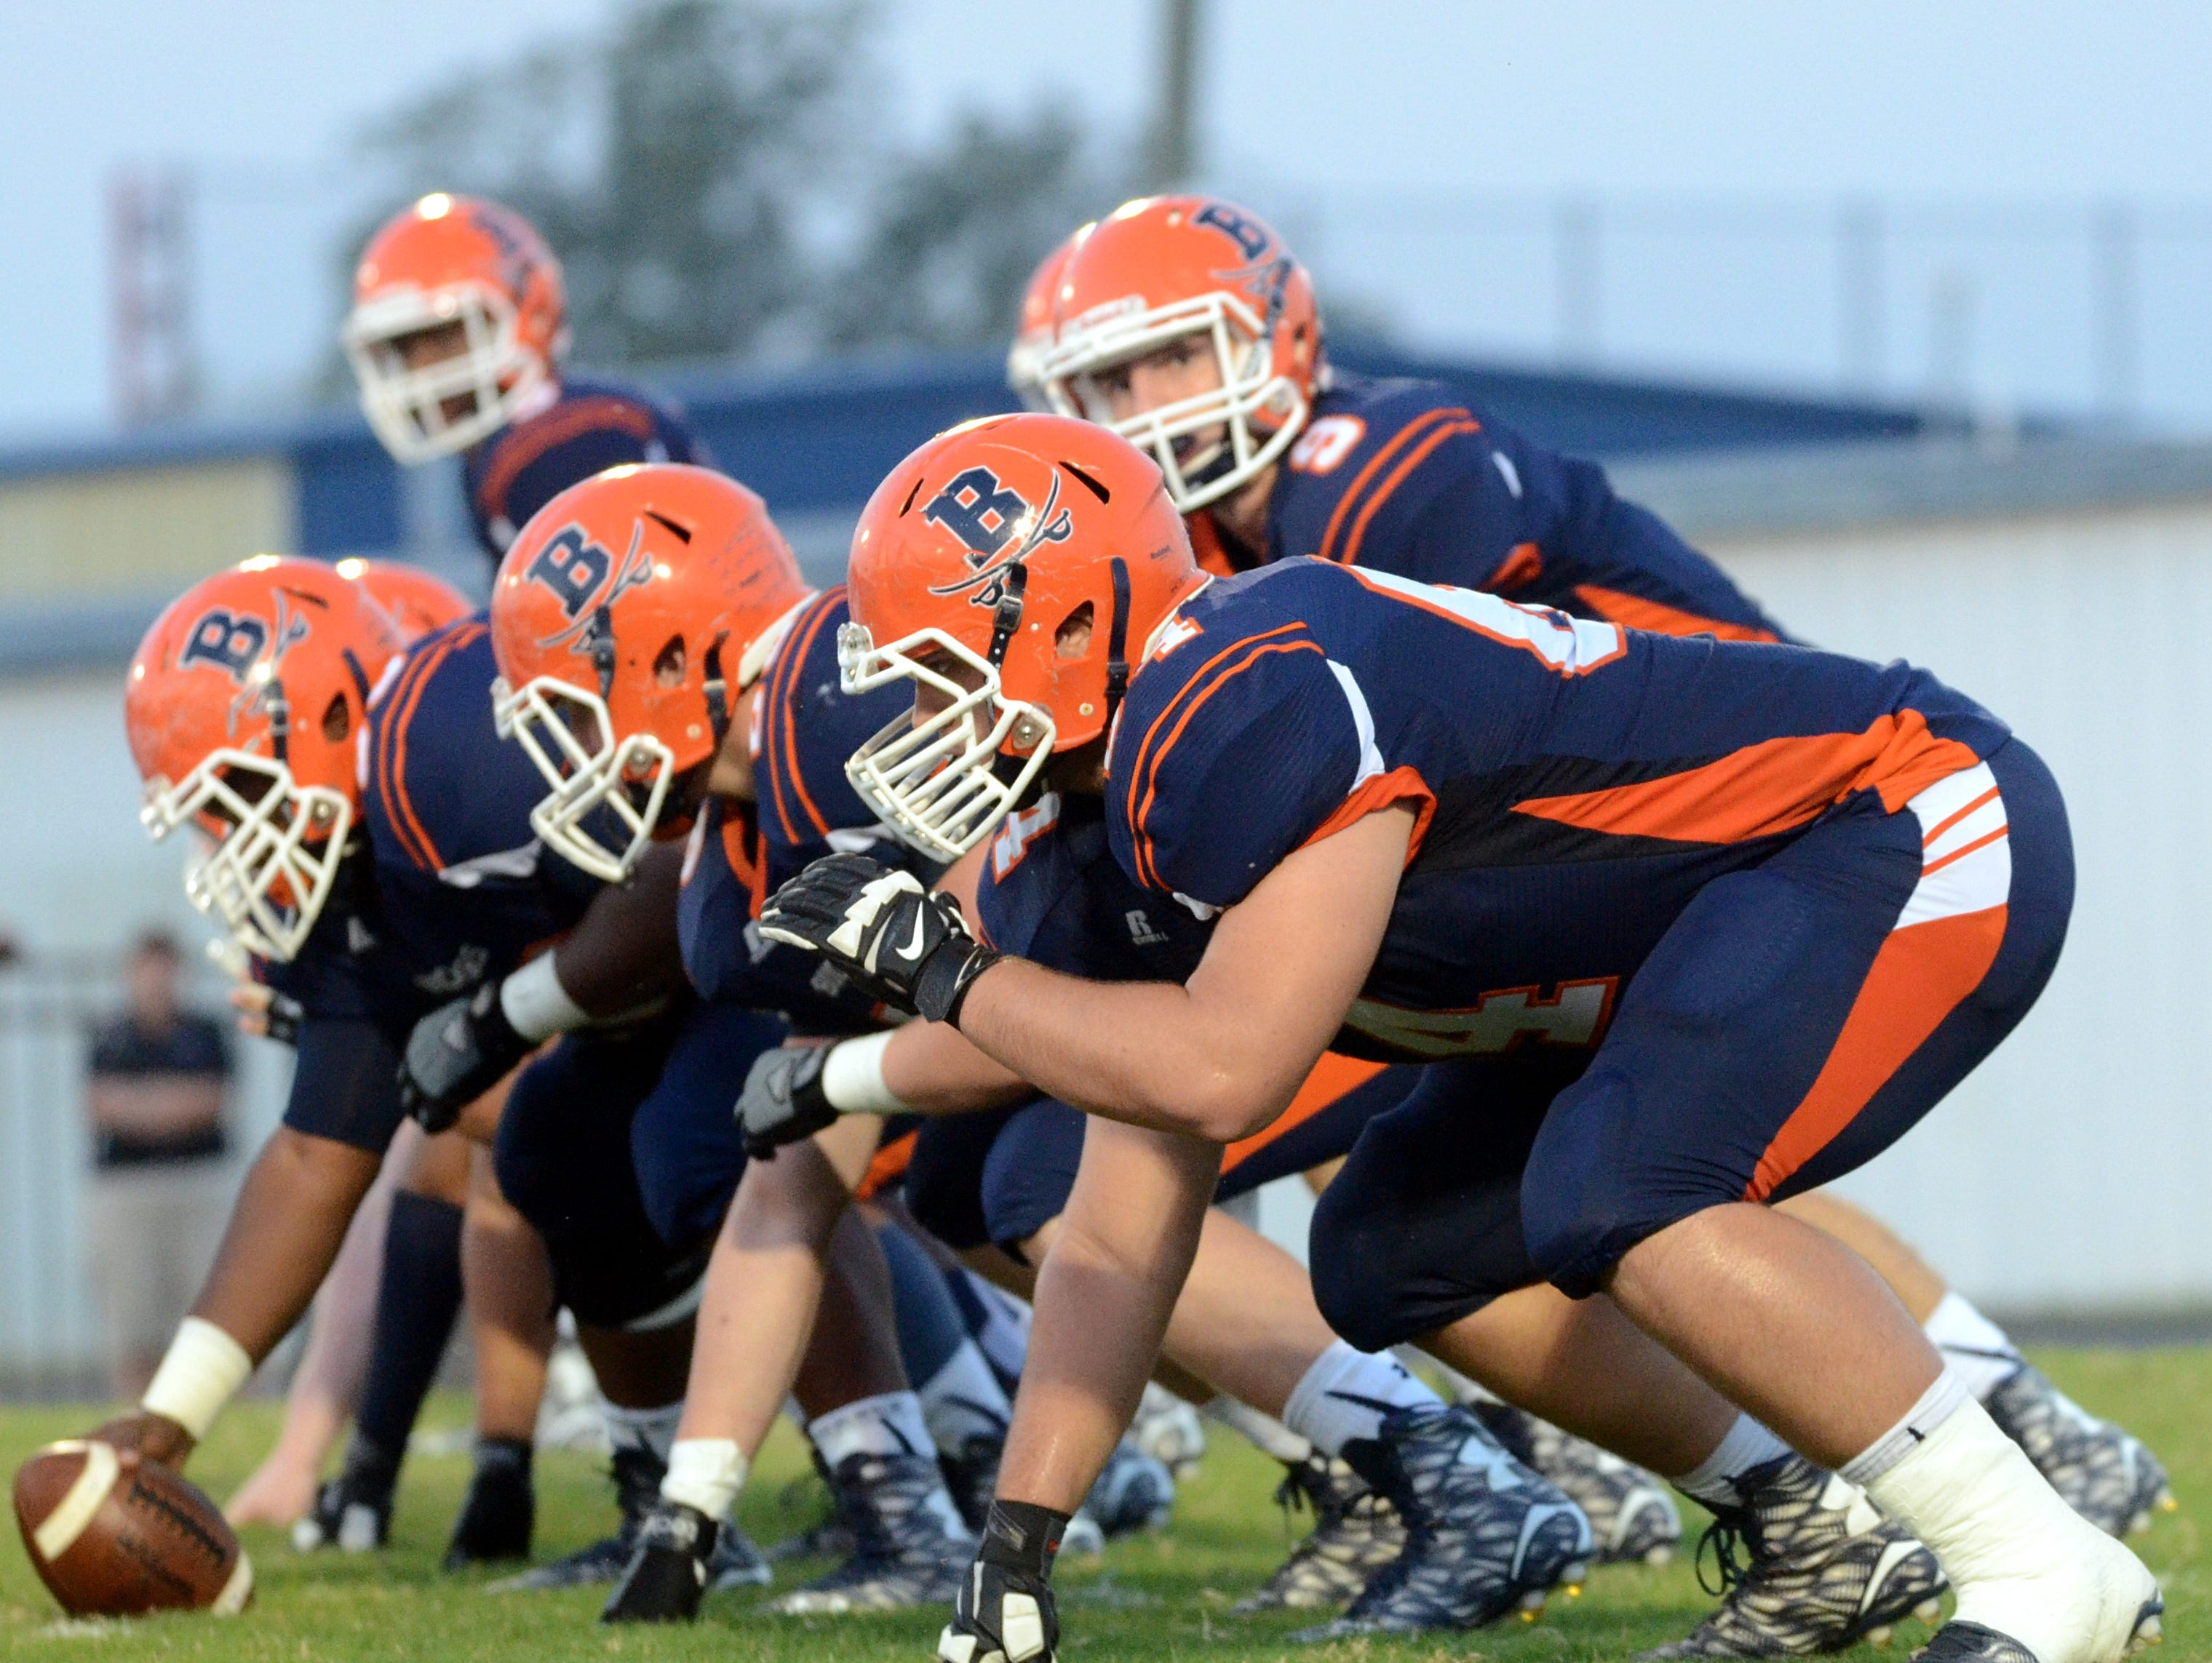 The Beech High football squad faces rival Hendersonville on Friday evening.